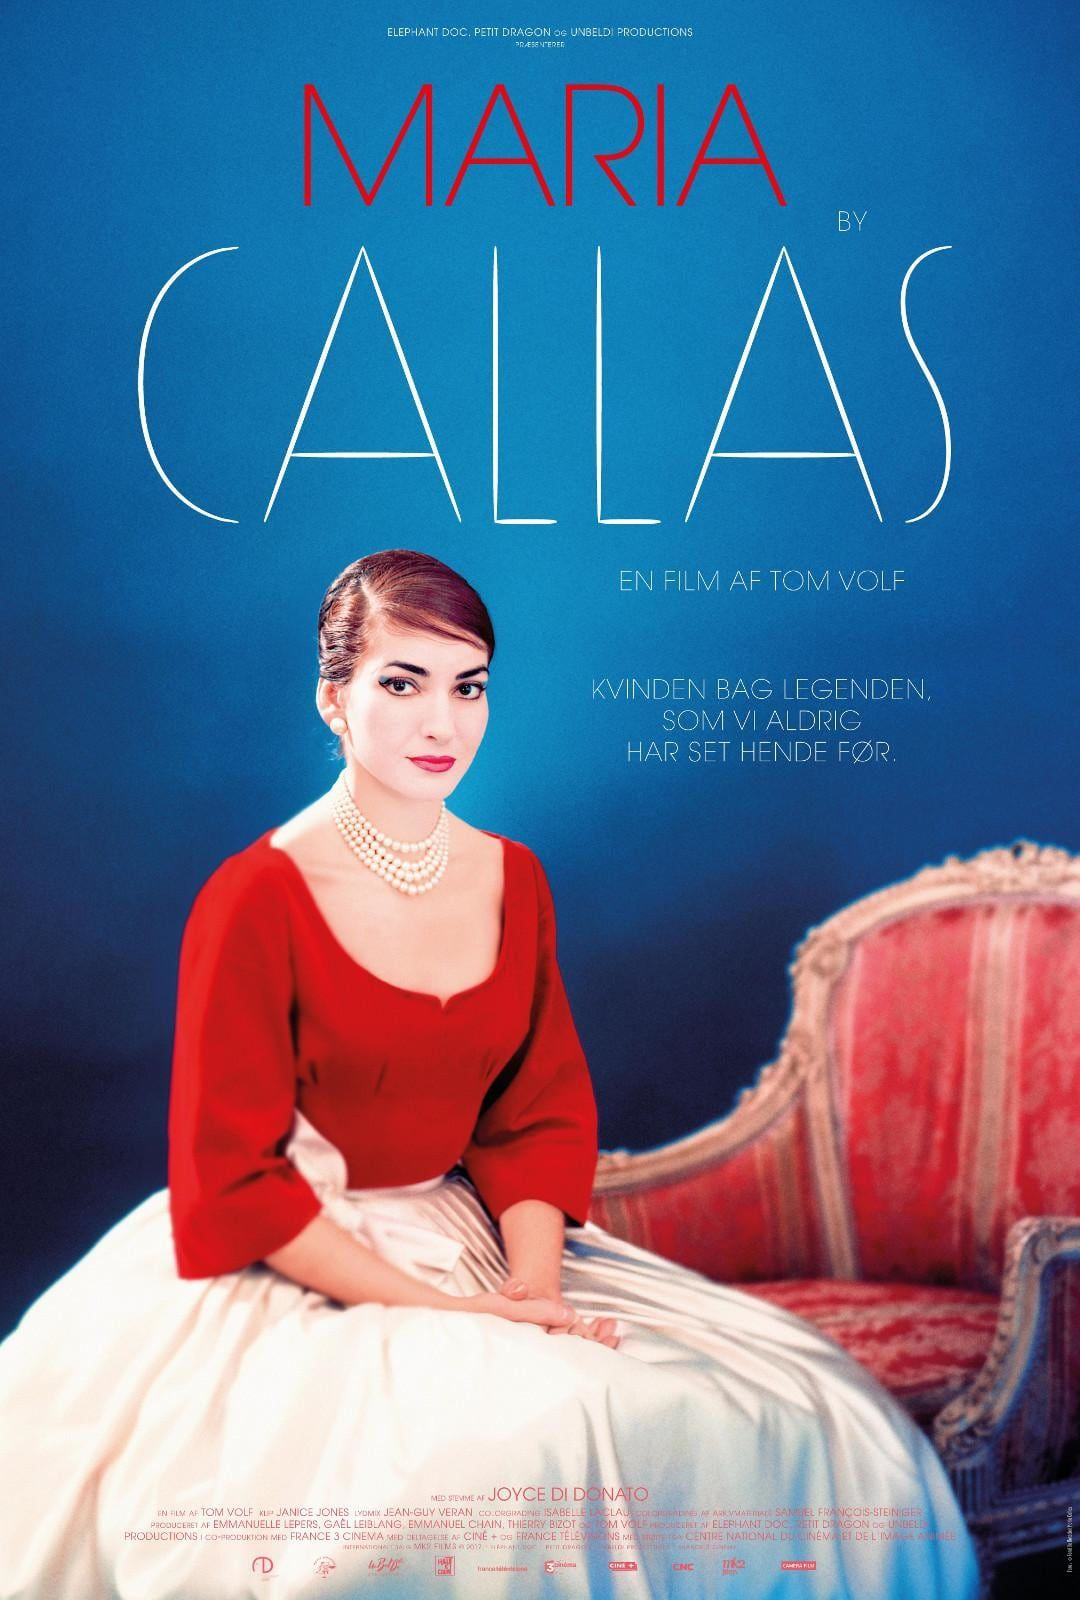 DOWNLOAD Maria by Callas FULL MOVIE HD1080p Sub English